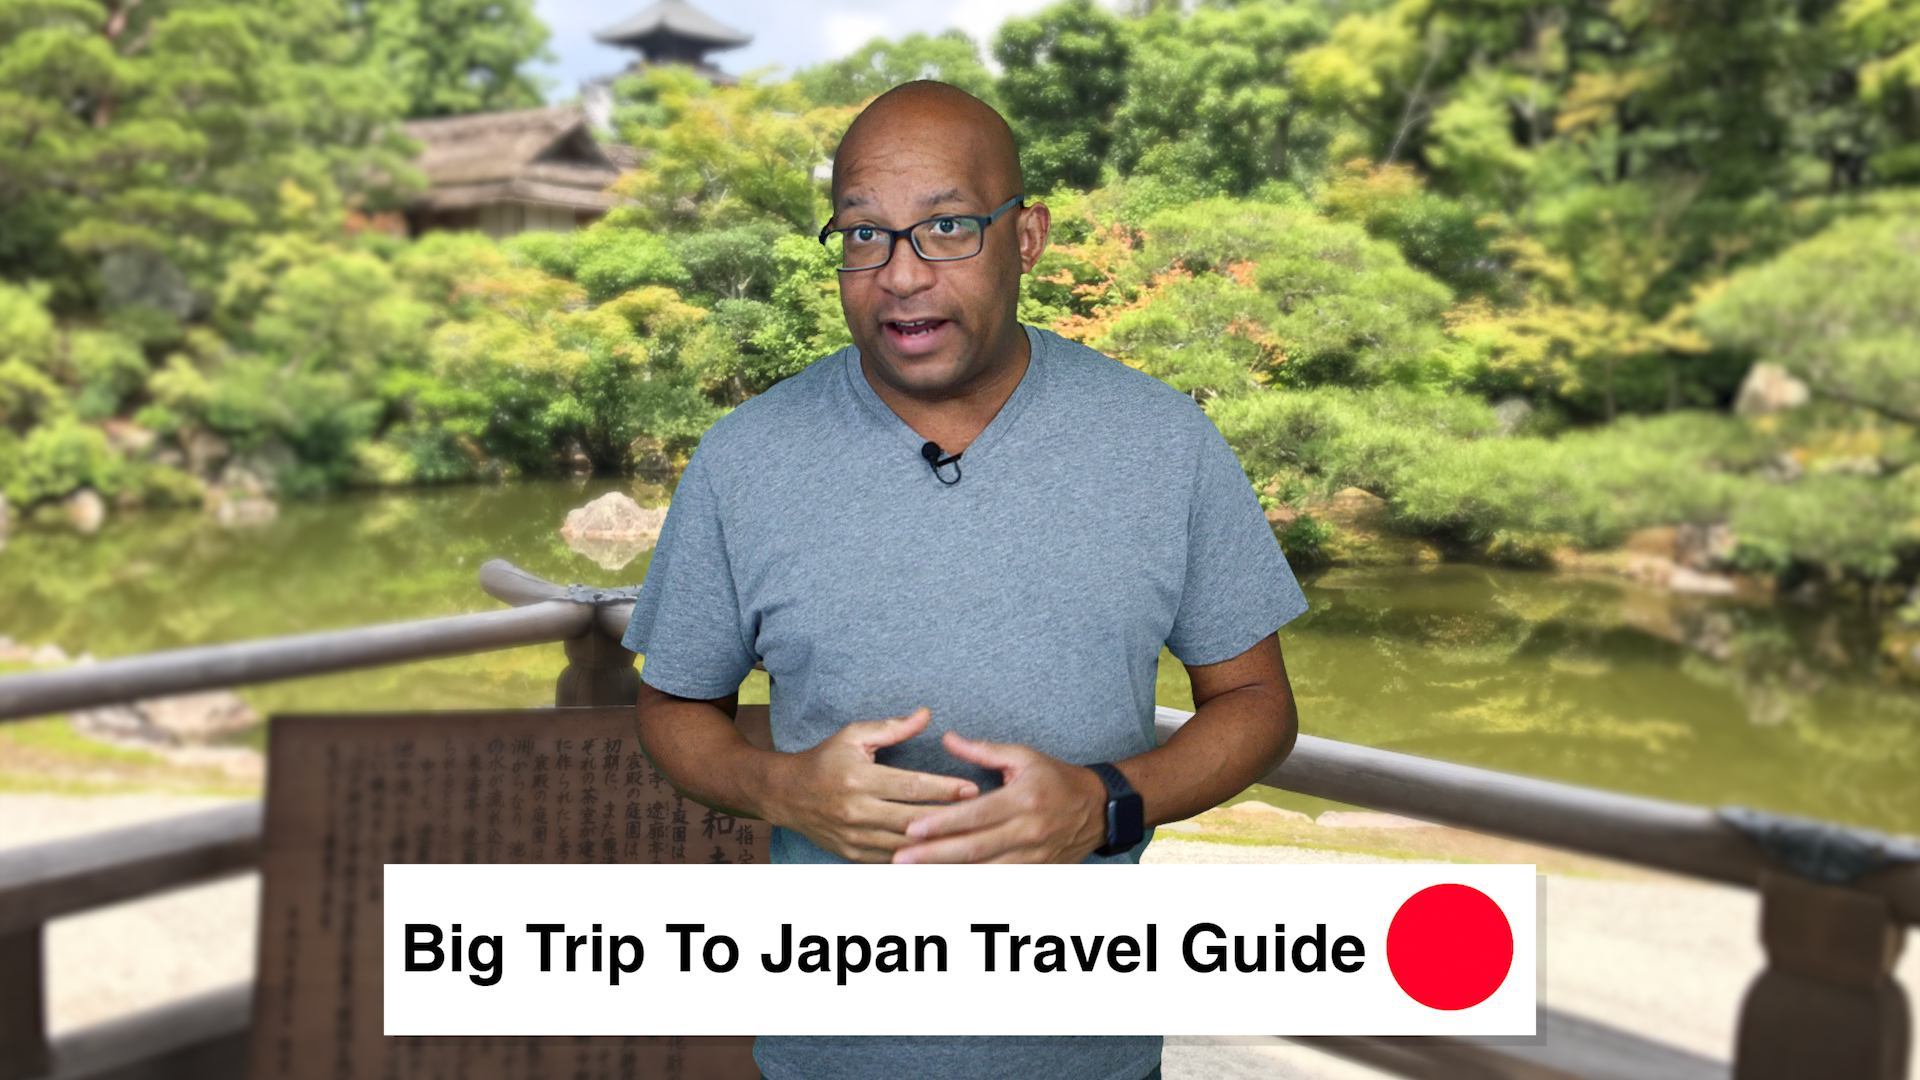 Disclaimer - Japan Travel Guide Book - Tourism Guide Travel Vlog